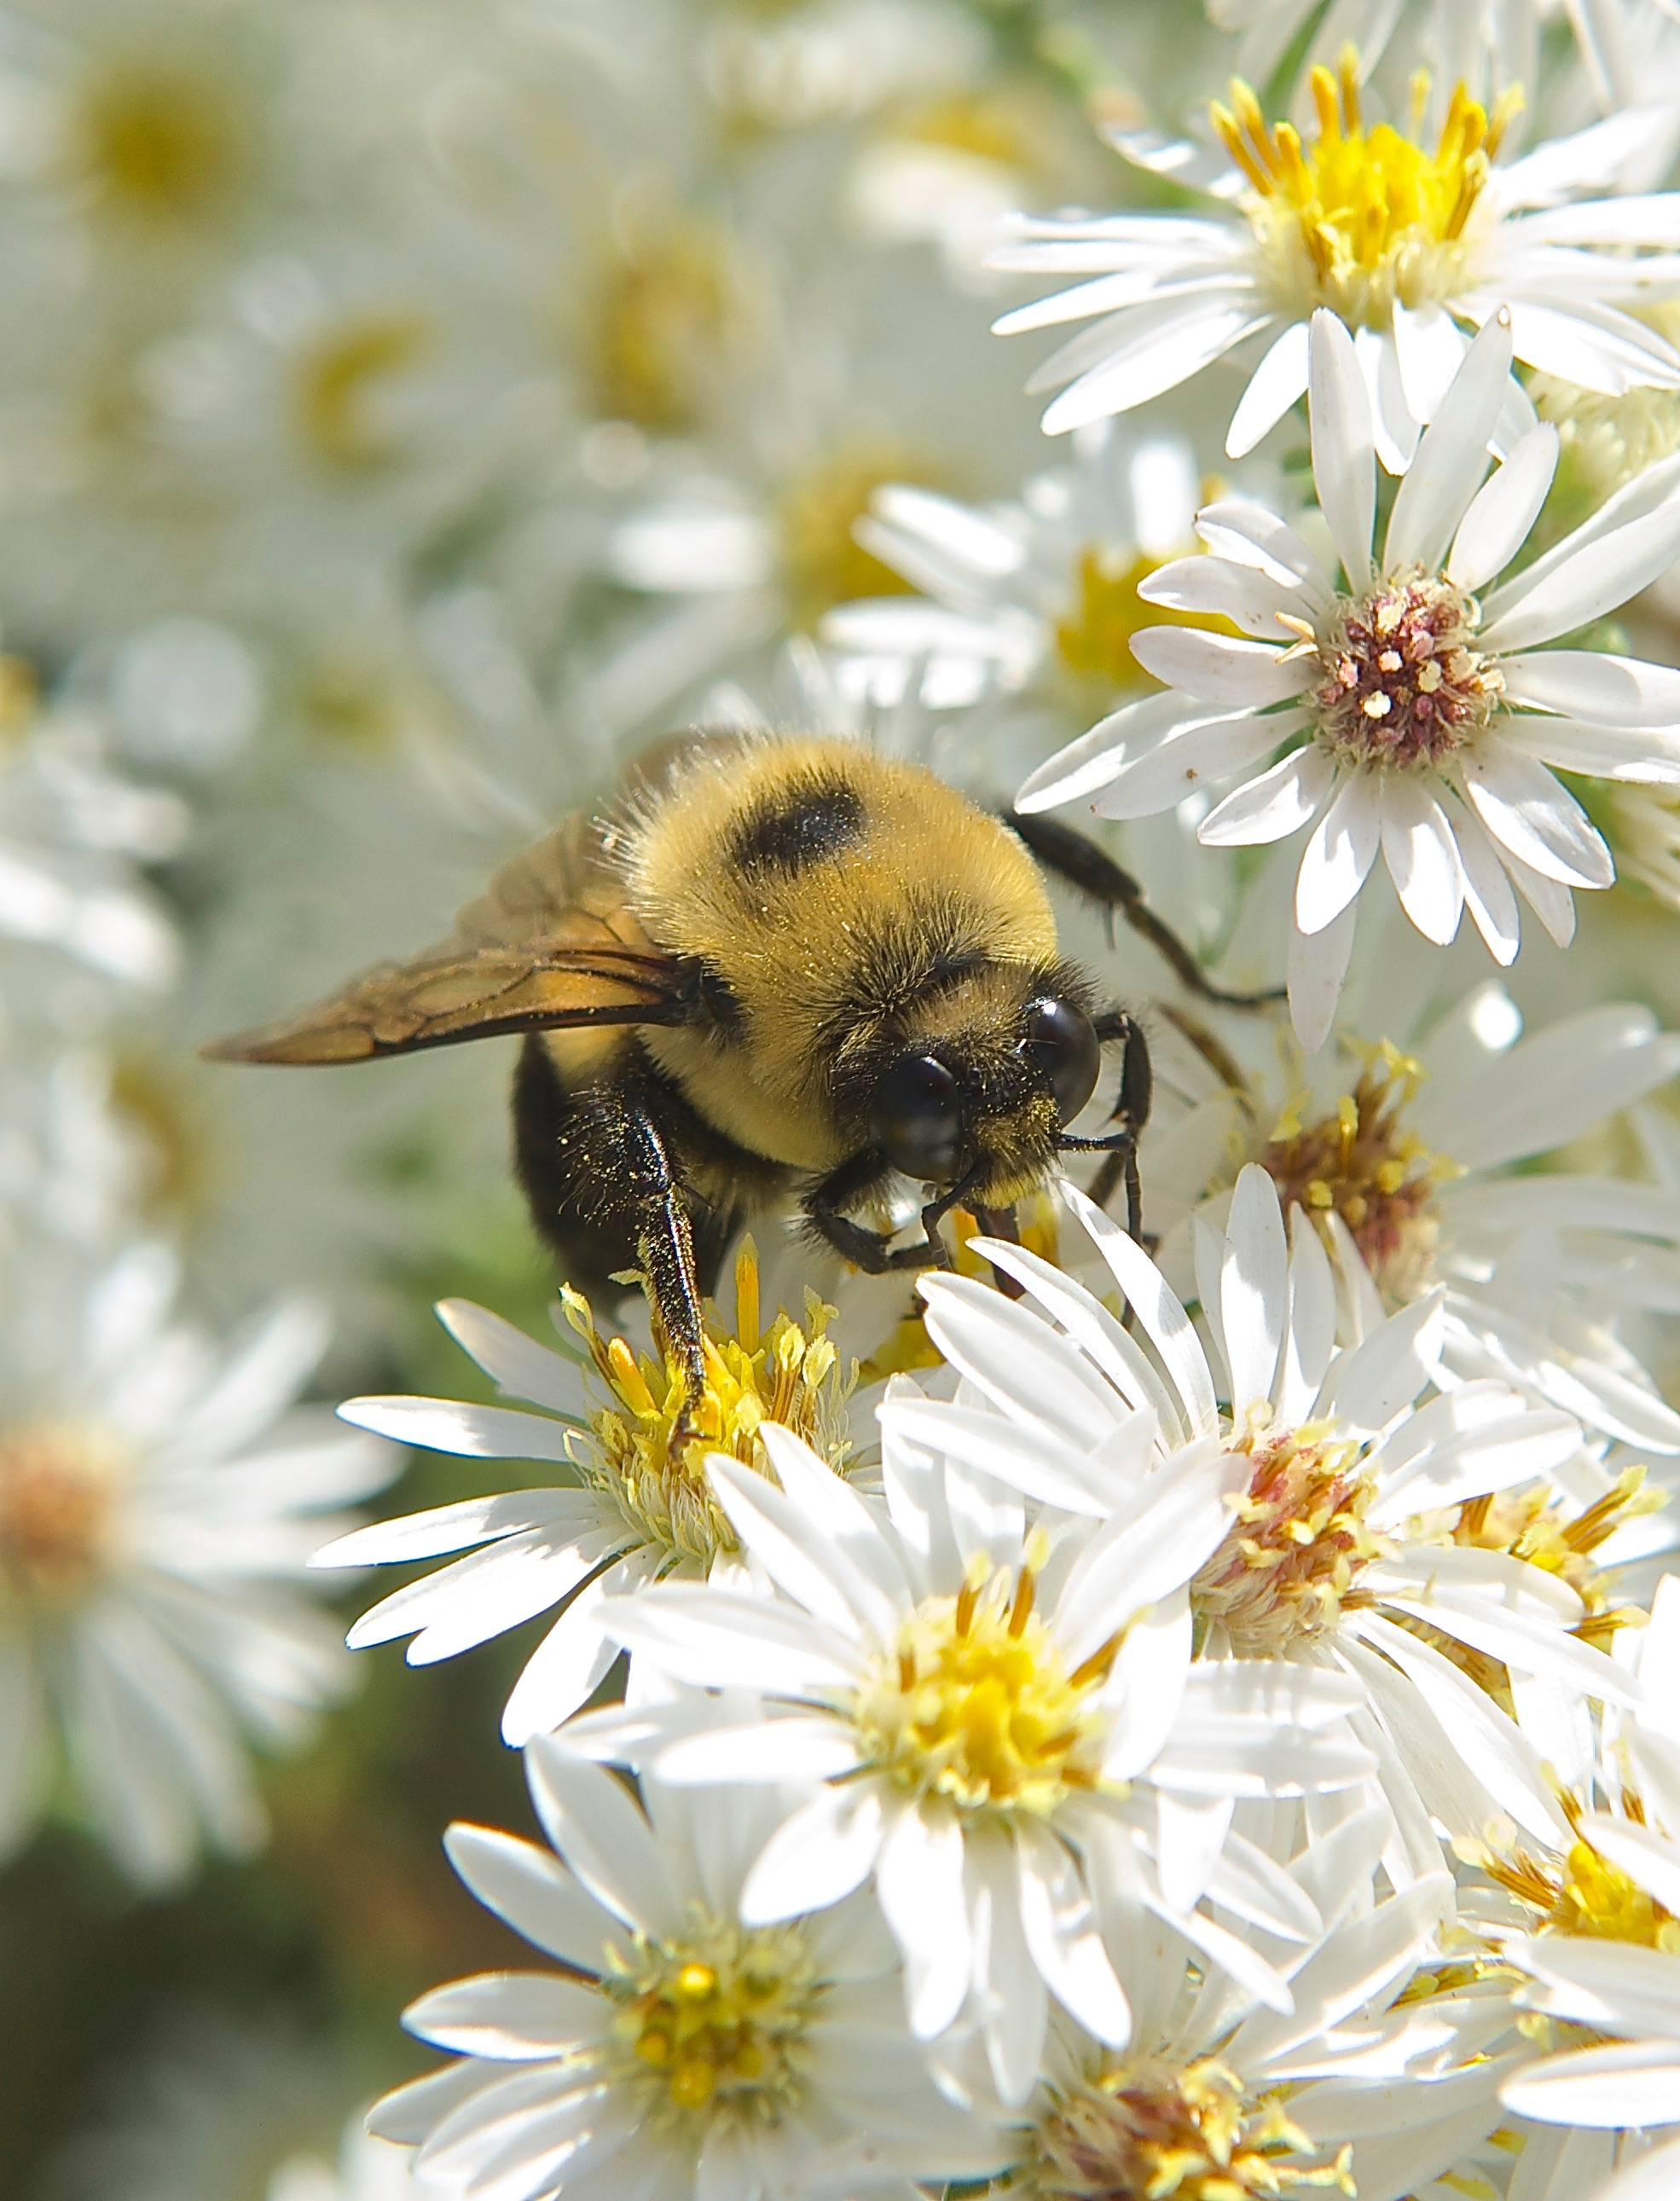 Bumble Bee on Heath Aster (Symphyotrichum ericoides)